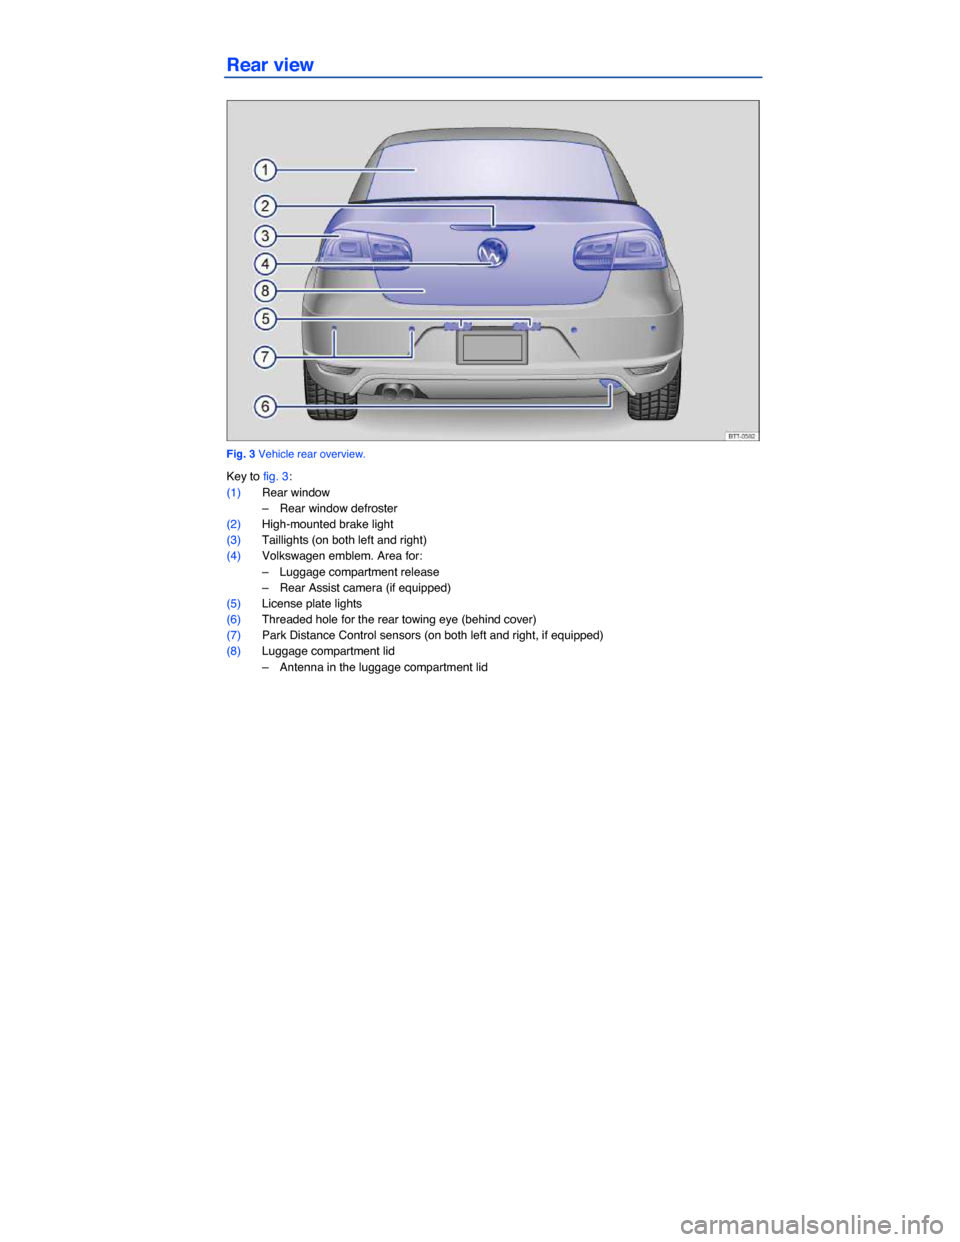 VOLKSWAGEN EOS 2014 1.G Owners Manual     Rear view    Fig. 3 Vehicle rear overview.  Key to fig. 3:  (1) Rear window  –  Rear window defroster   (2) High-mounted brake light  (3) Taillights (on both left and right)   (4) Volkswagen emb